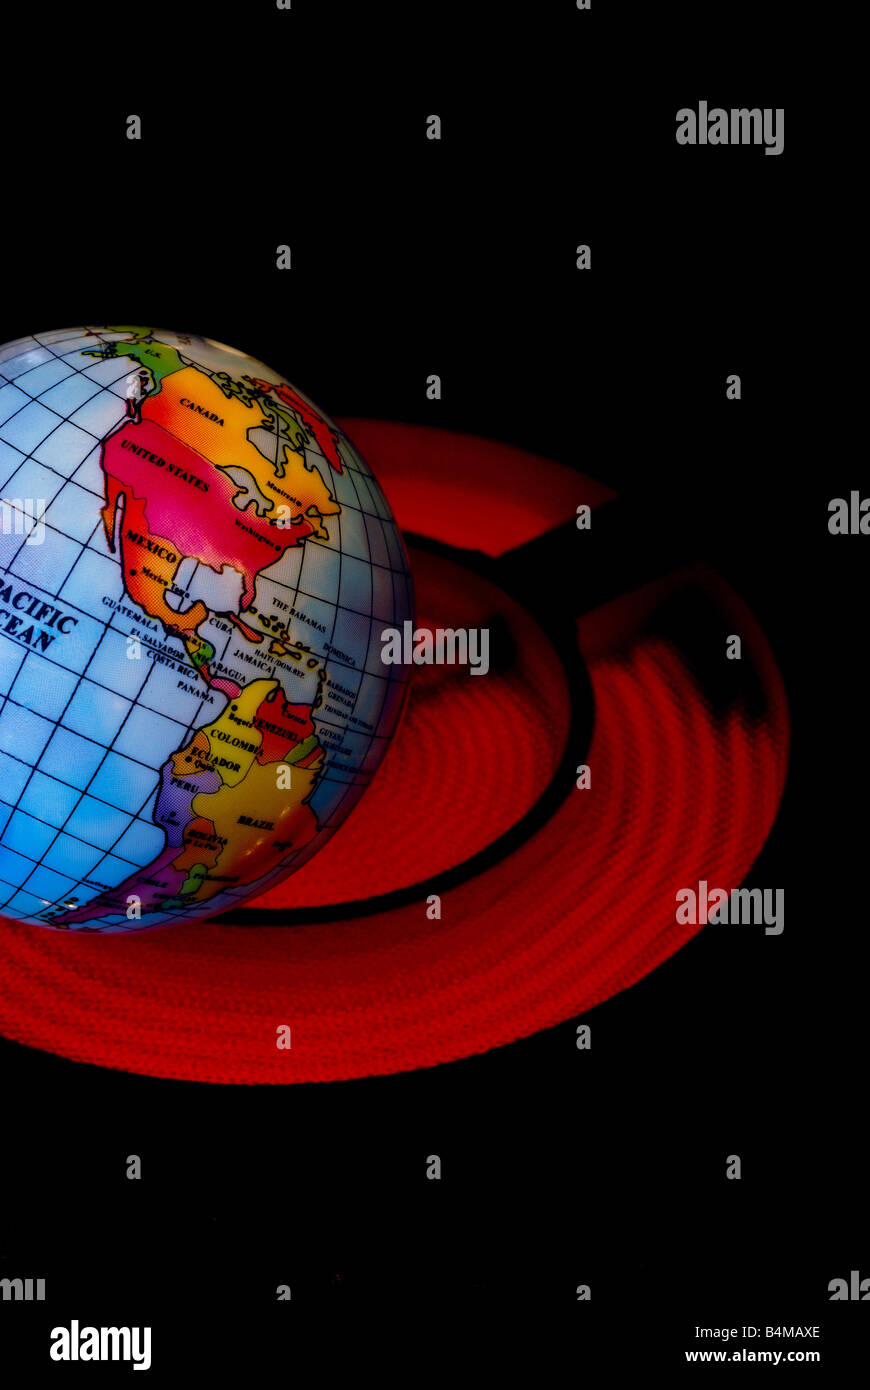 A globe is shown beon top of a hot stove burner representing the concept of Global Warming - Stock Image